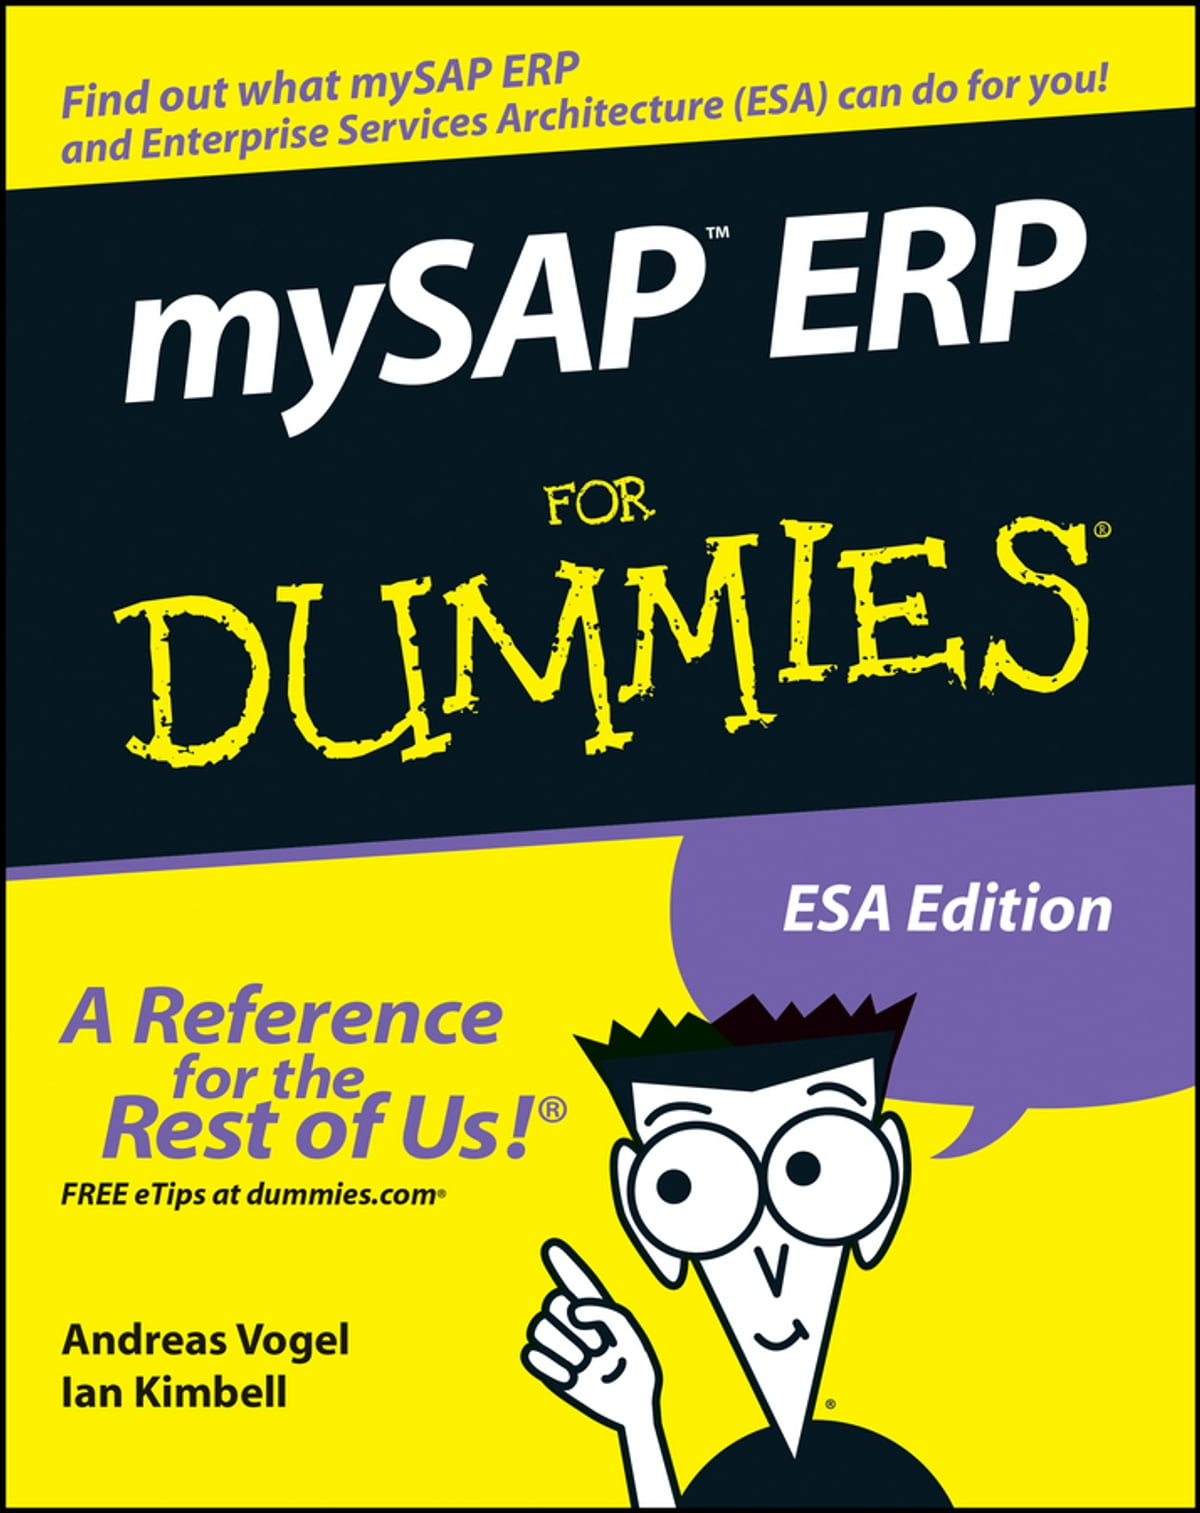 Mysap Erp For Dummies Ebook By Andreas Vogel 9781118054819